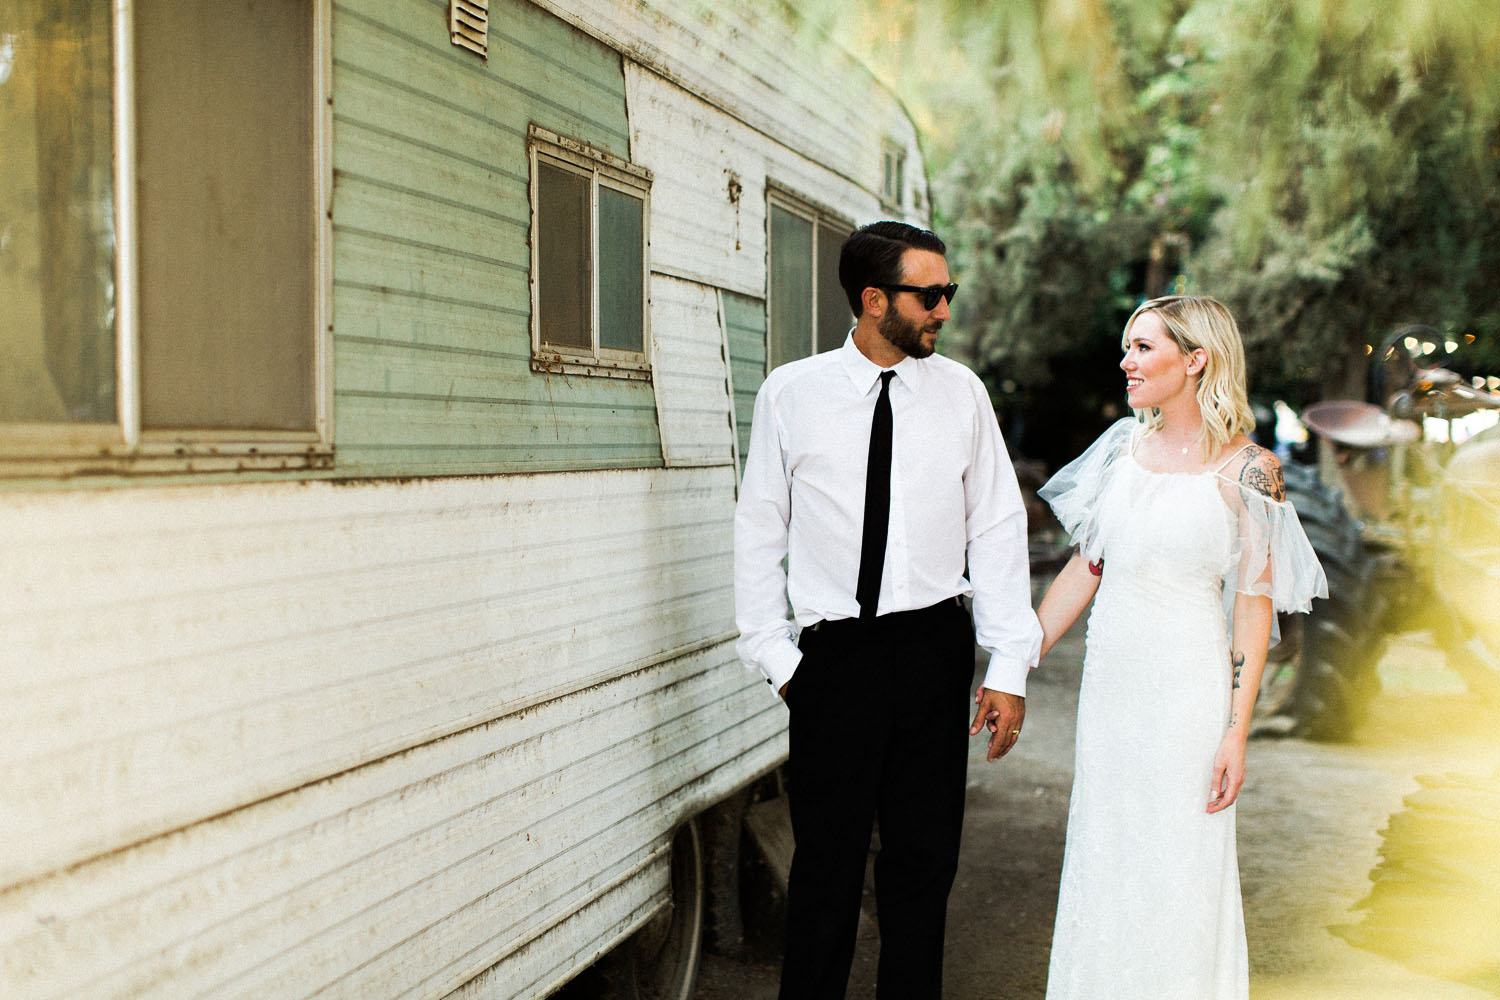 Elegant Boho Wedding on Suburu Farm in Bakersfield California, Cassie and Darin Buoni